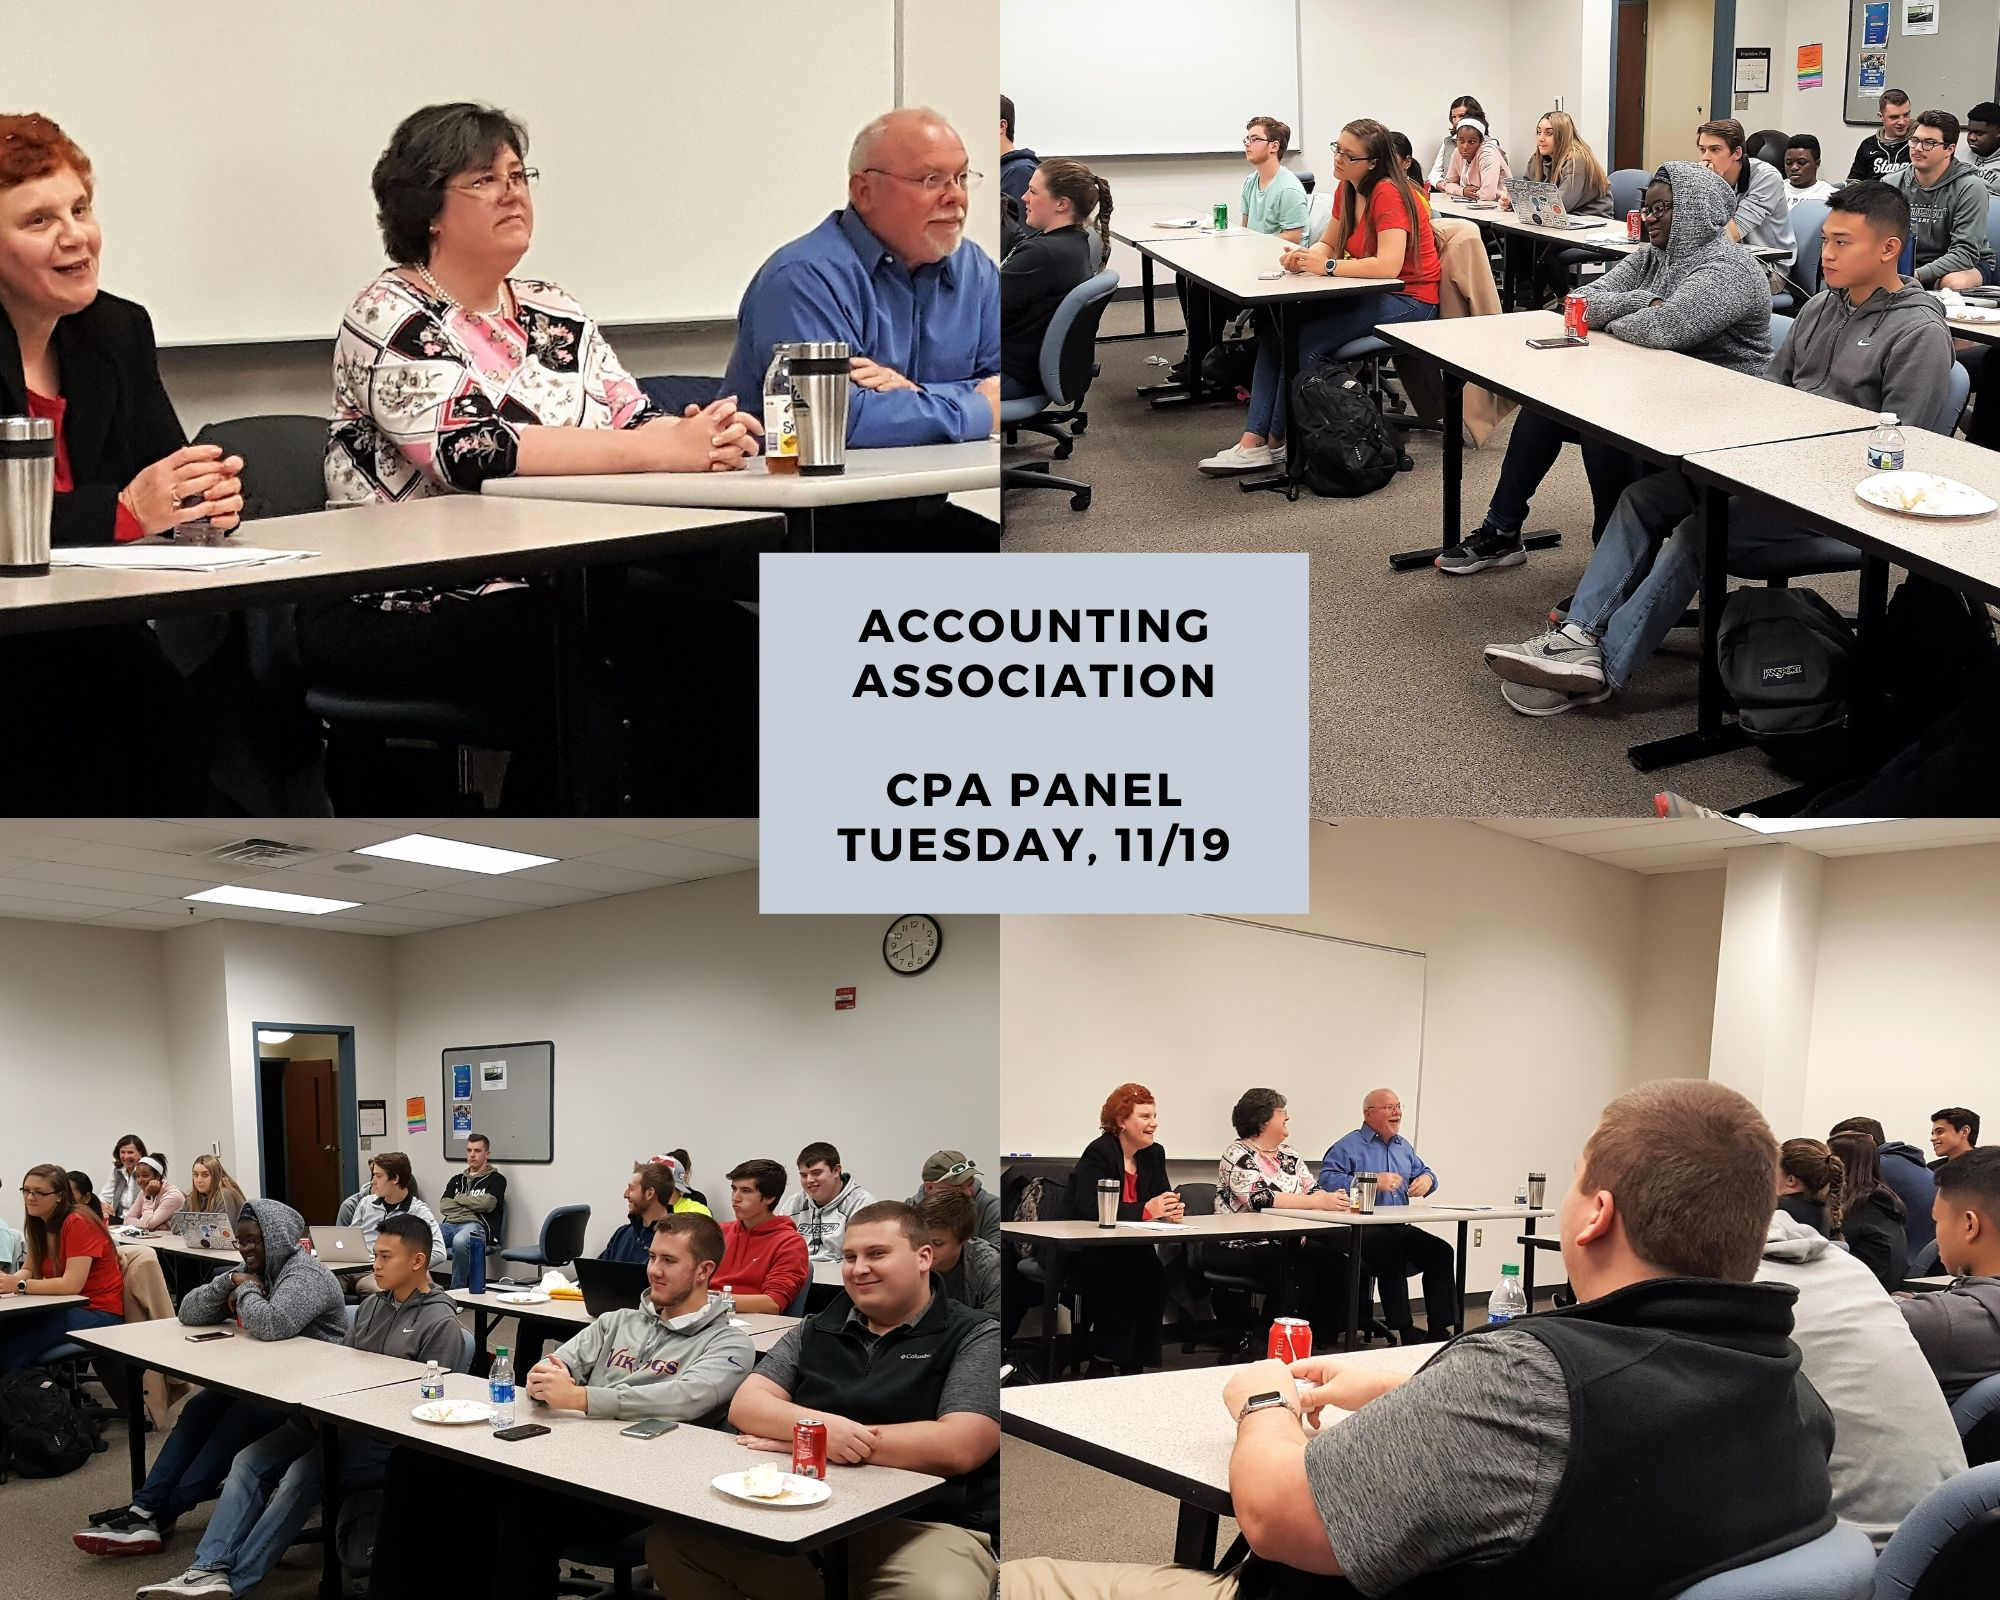 Accounting Association CPA Panel